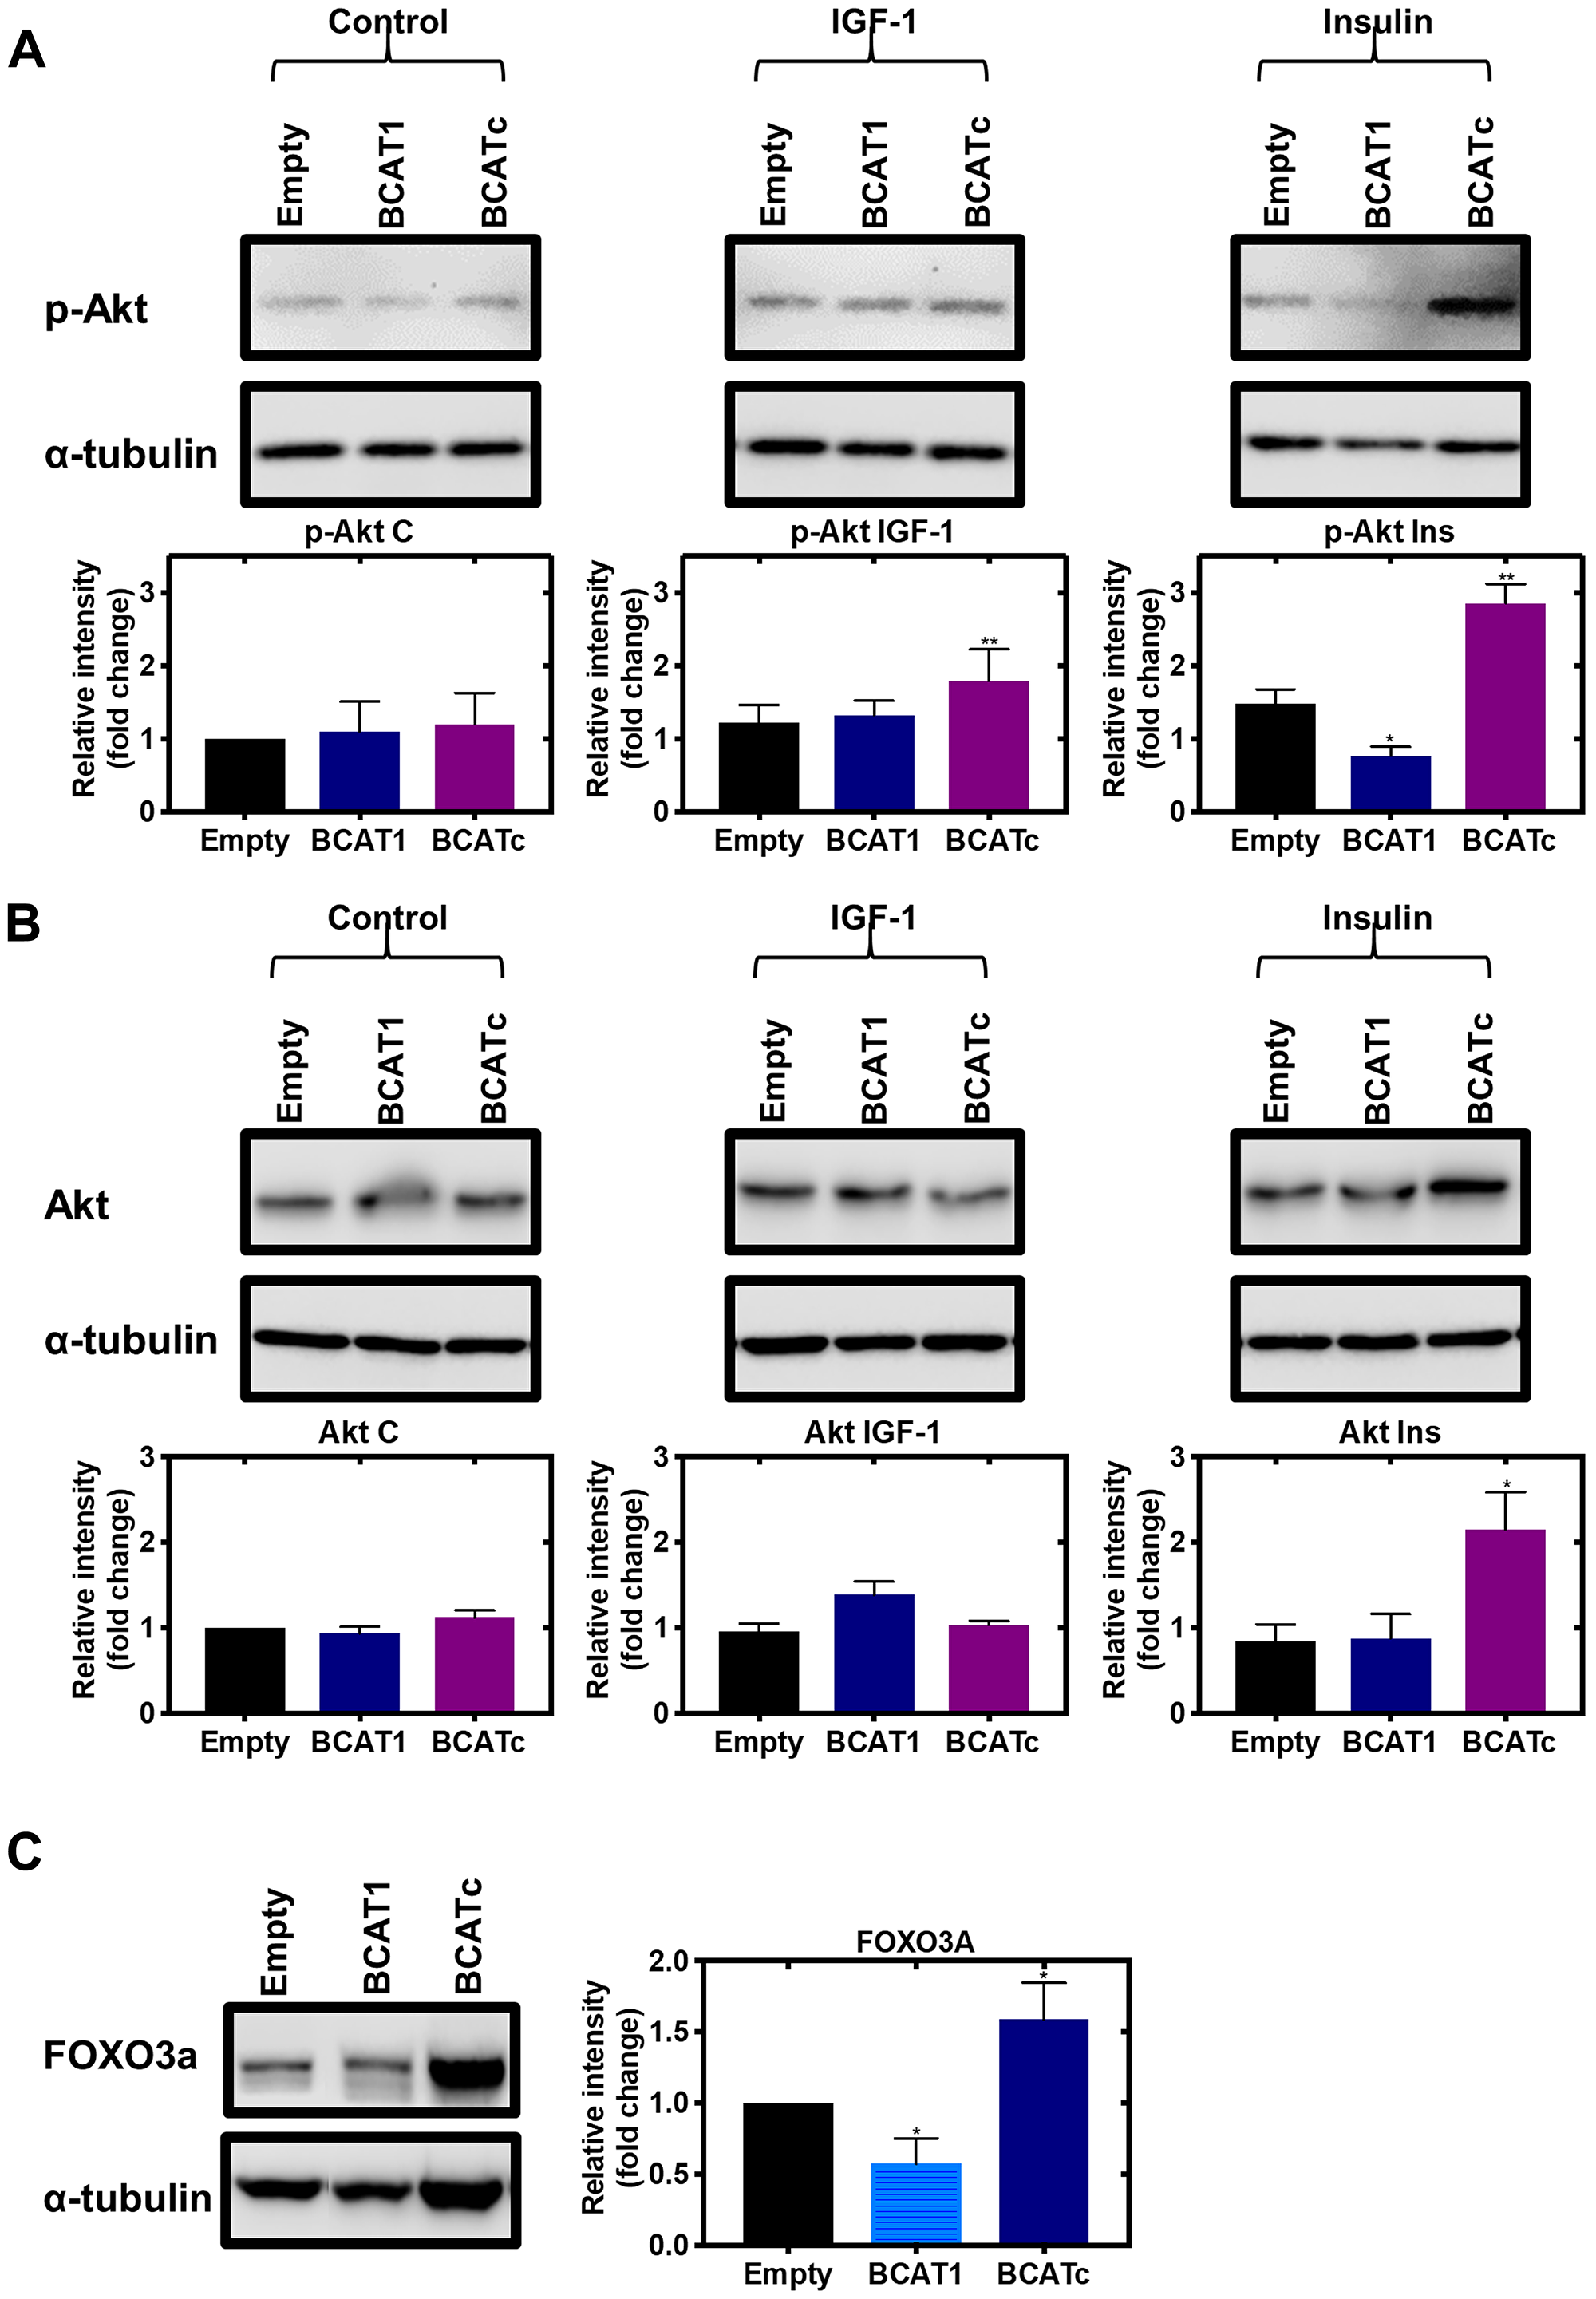 Knockdown and overexpression of BCAT1 regulates the PI3K/Akt axis in MDA-MB-231 cells.